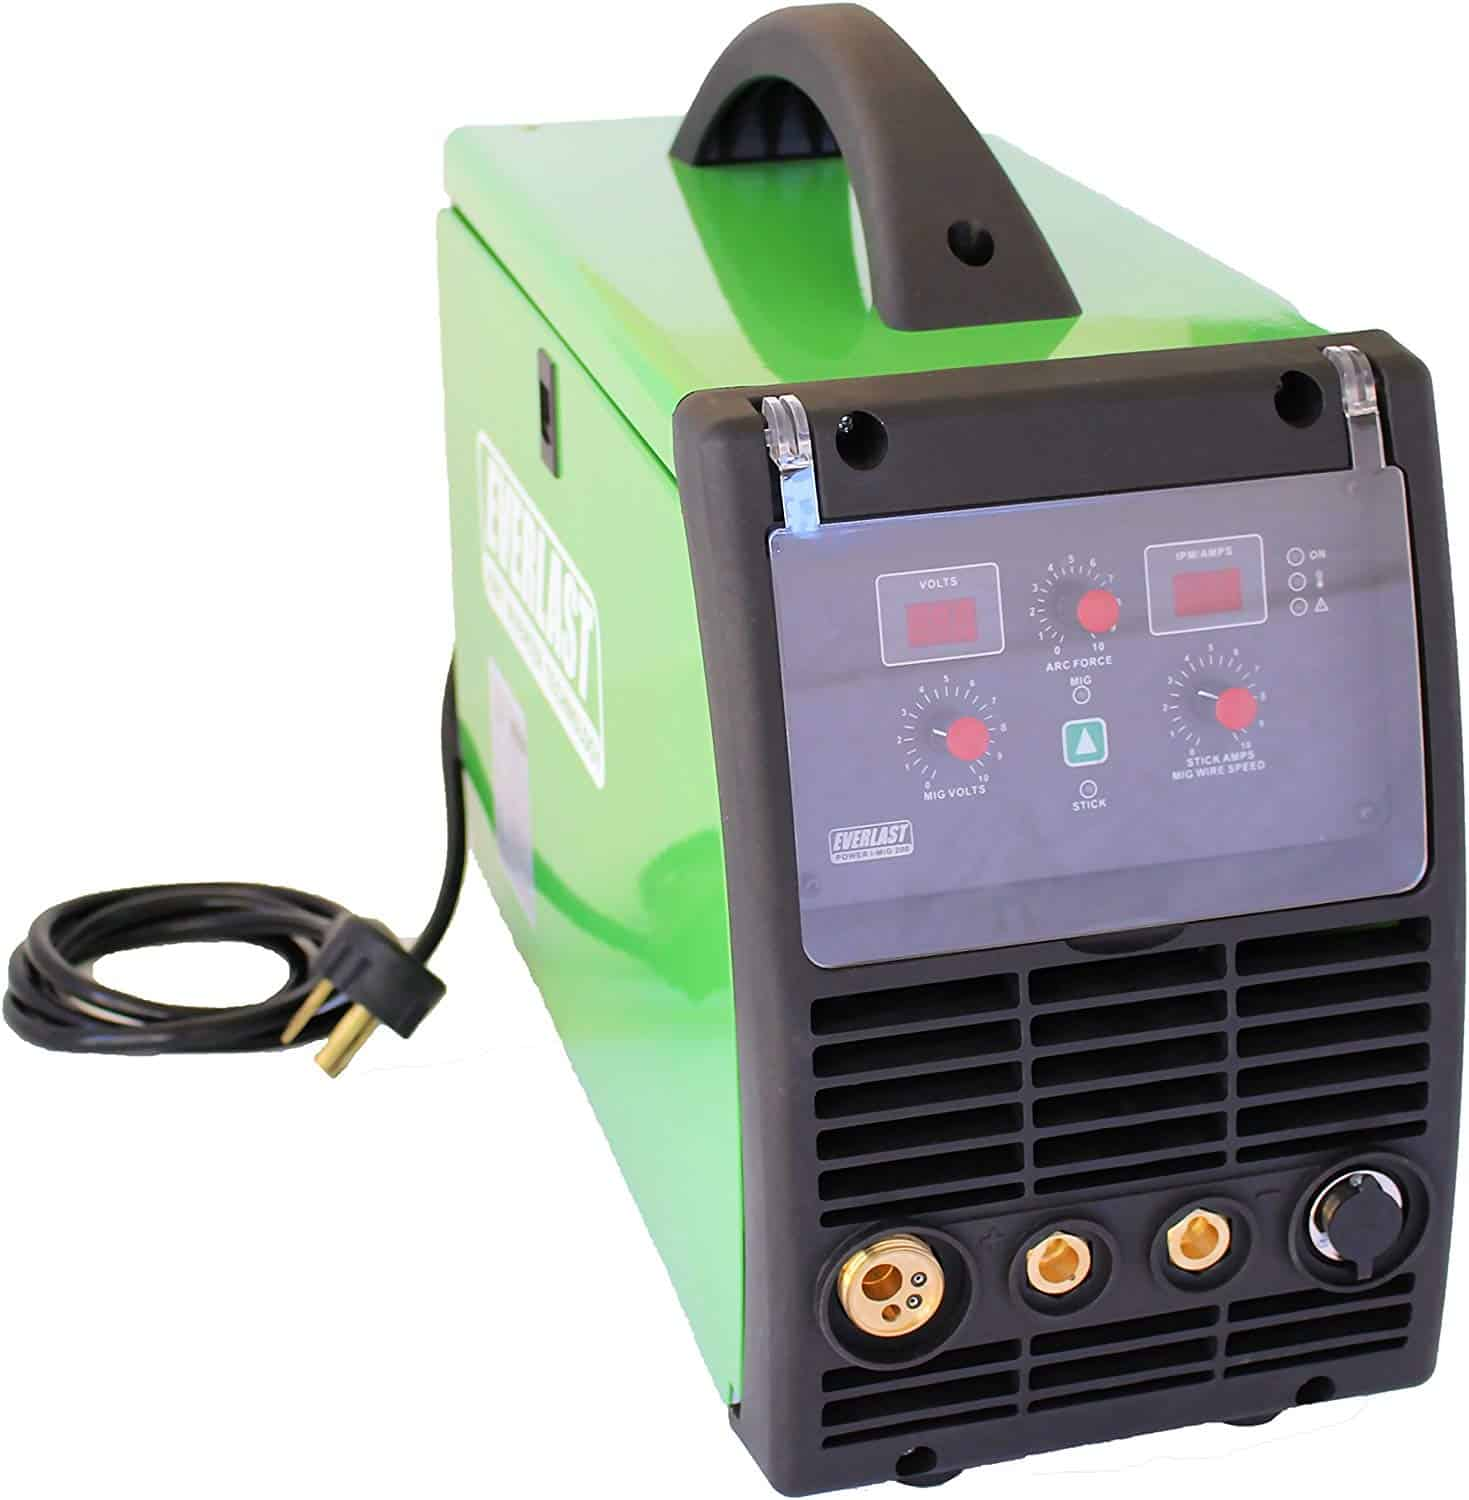 Everlast PowerMIG 200 200amp MIG stick welder dual voltage 110v/220v